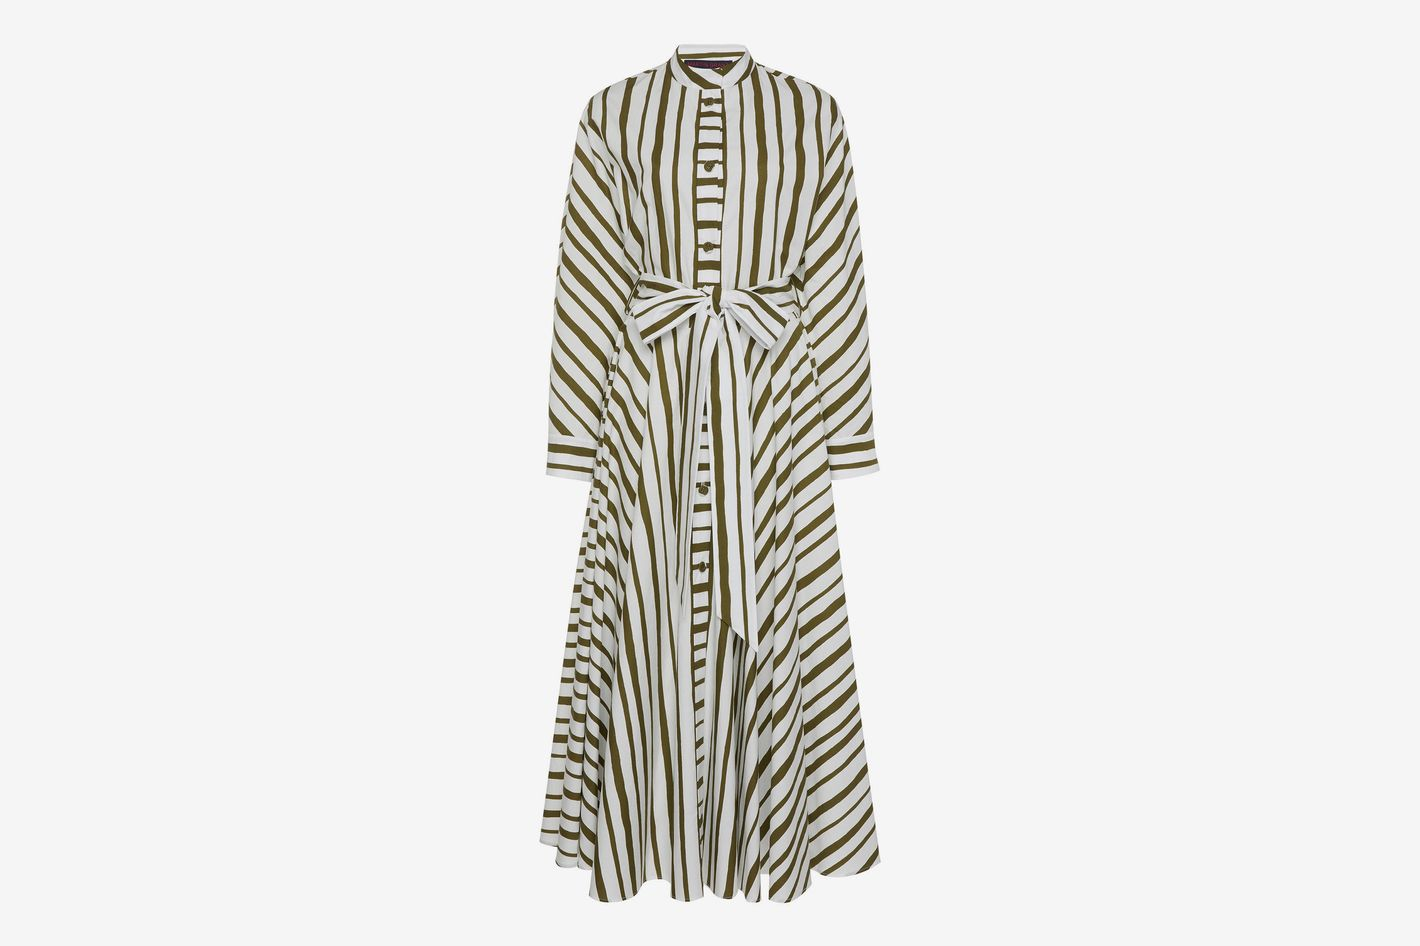 Martin Grant Striped Cotton Dress